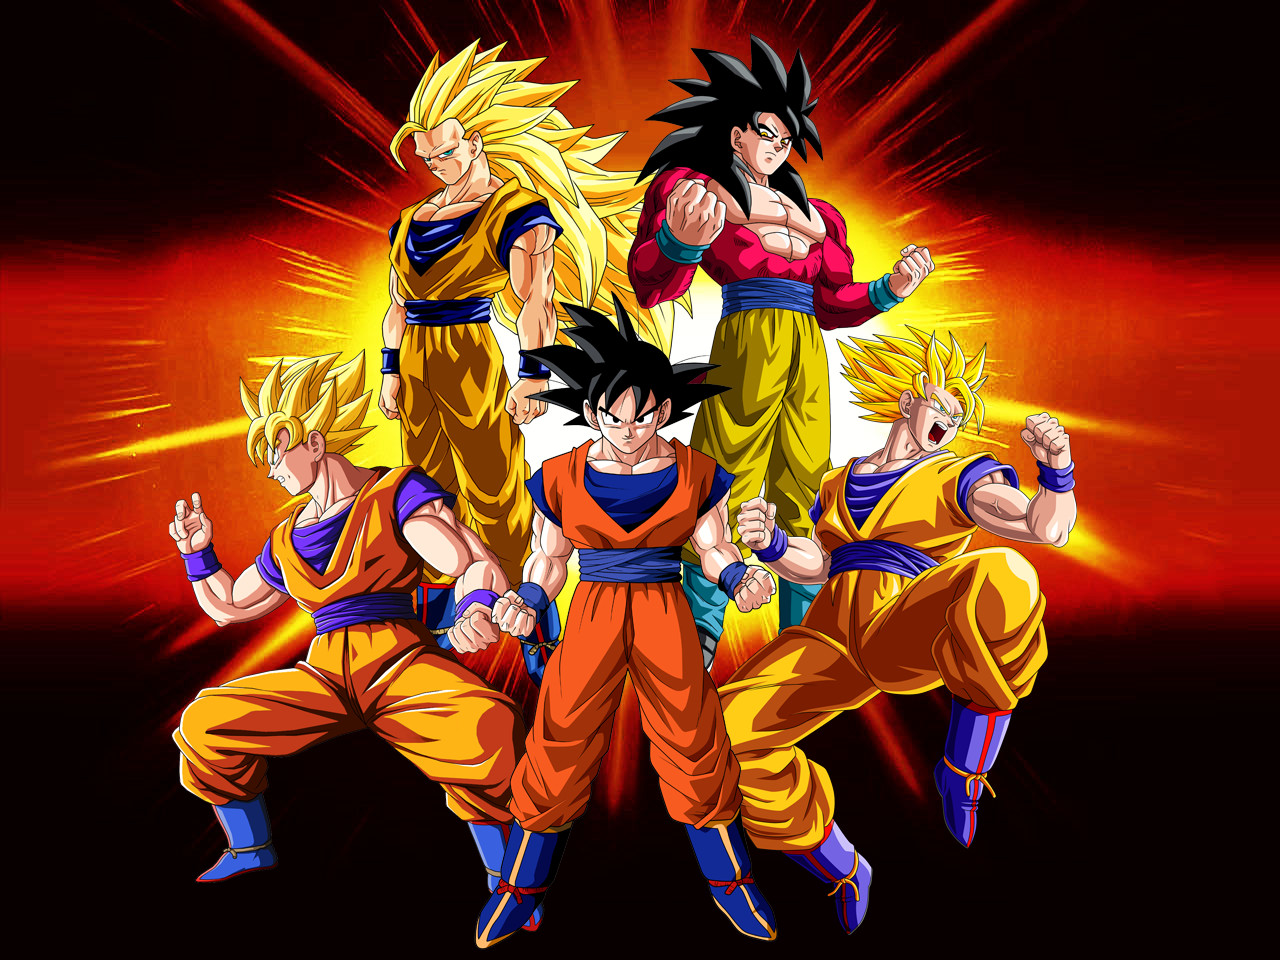 wallpaper goku evolution by dony910 fan art wallpaper movies tv 2012 1280x960